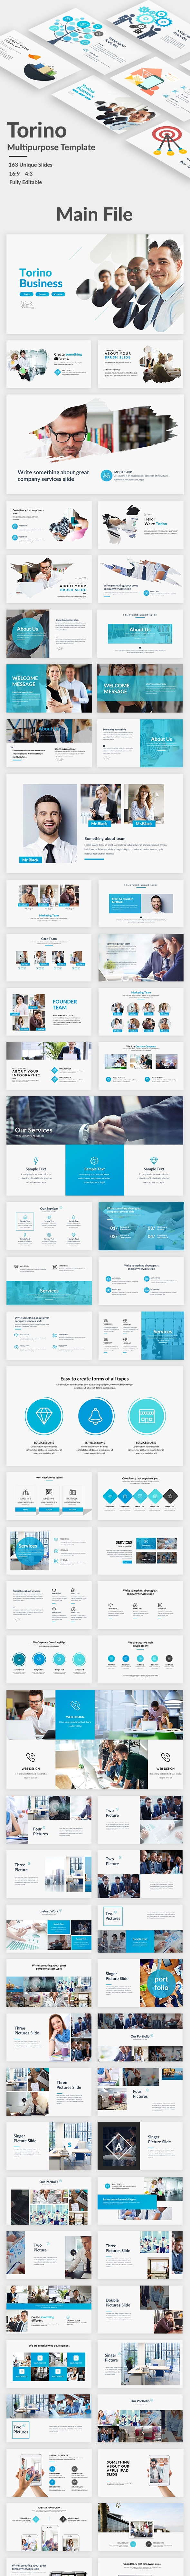 Torino Multipurpose Google Slide Template - Google Slides Presentation Templates